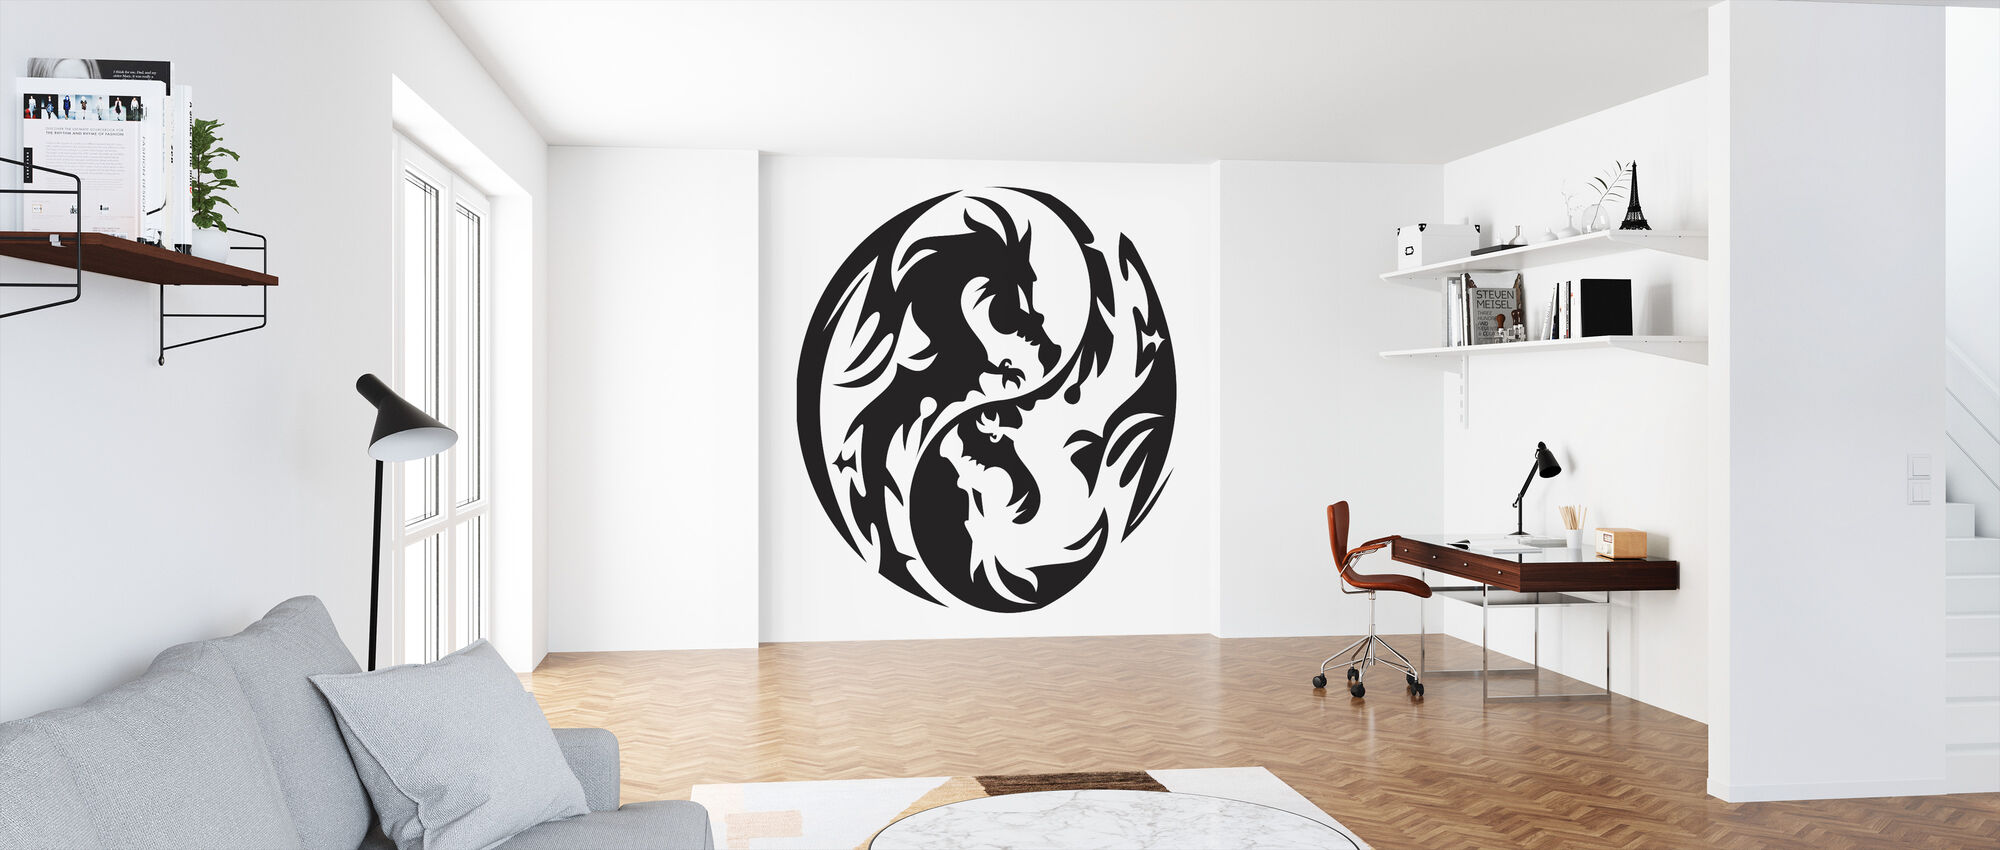 Circle Dragons - Wallpaper - Office